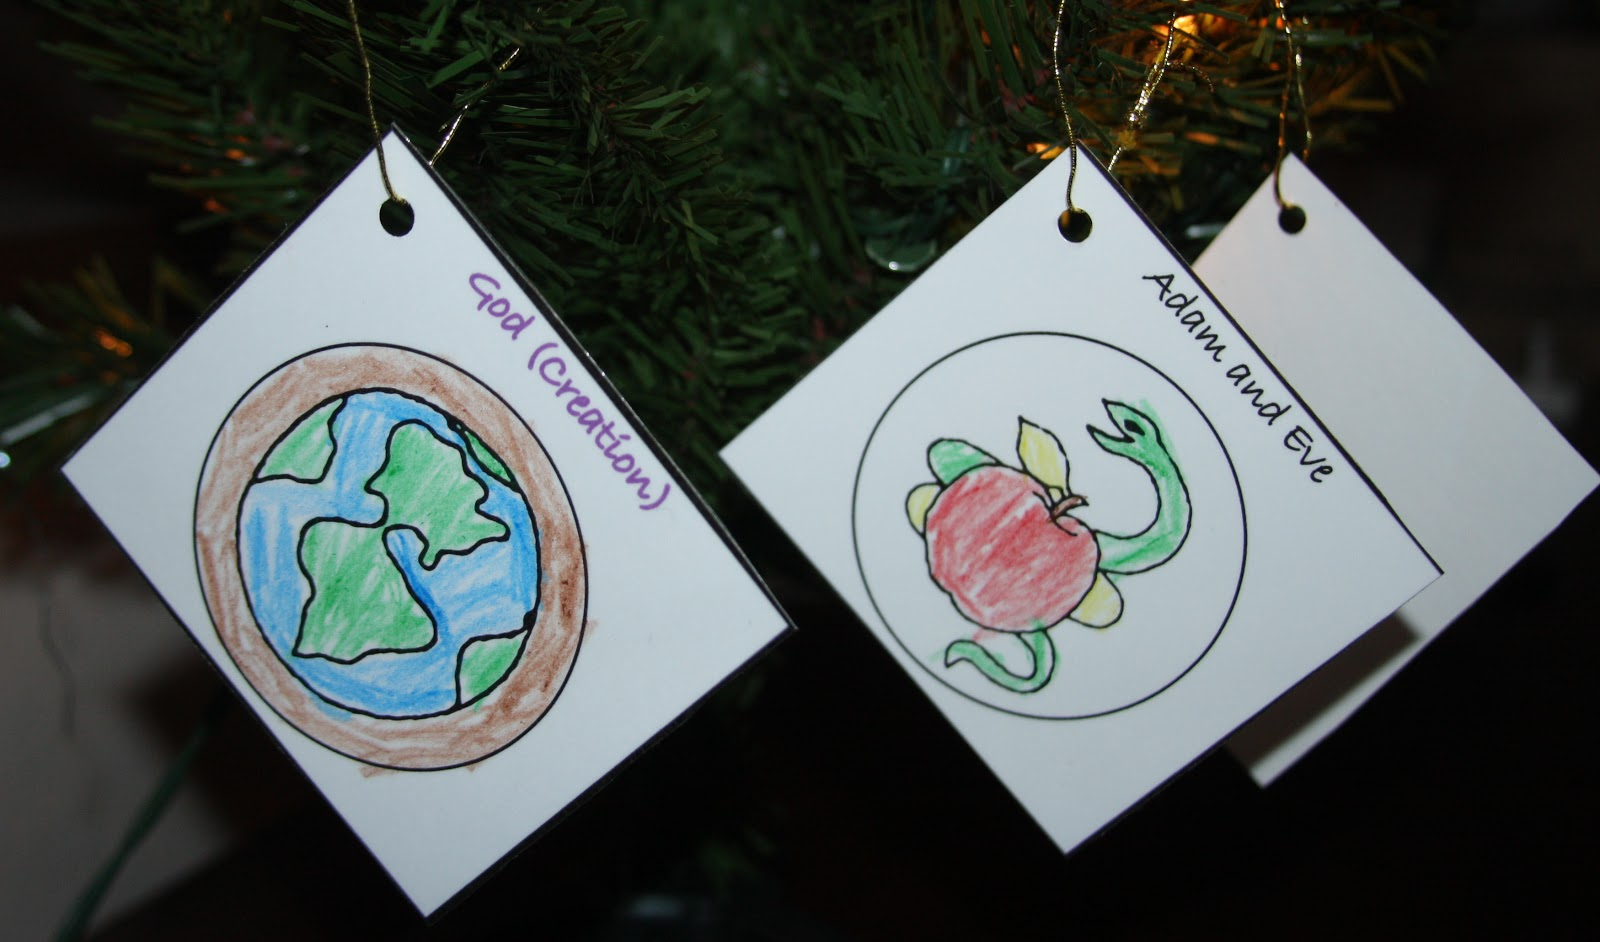 ... schedule, prayer cards, Scripture references, and printable ornaments